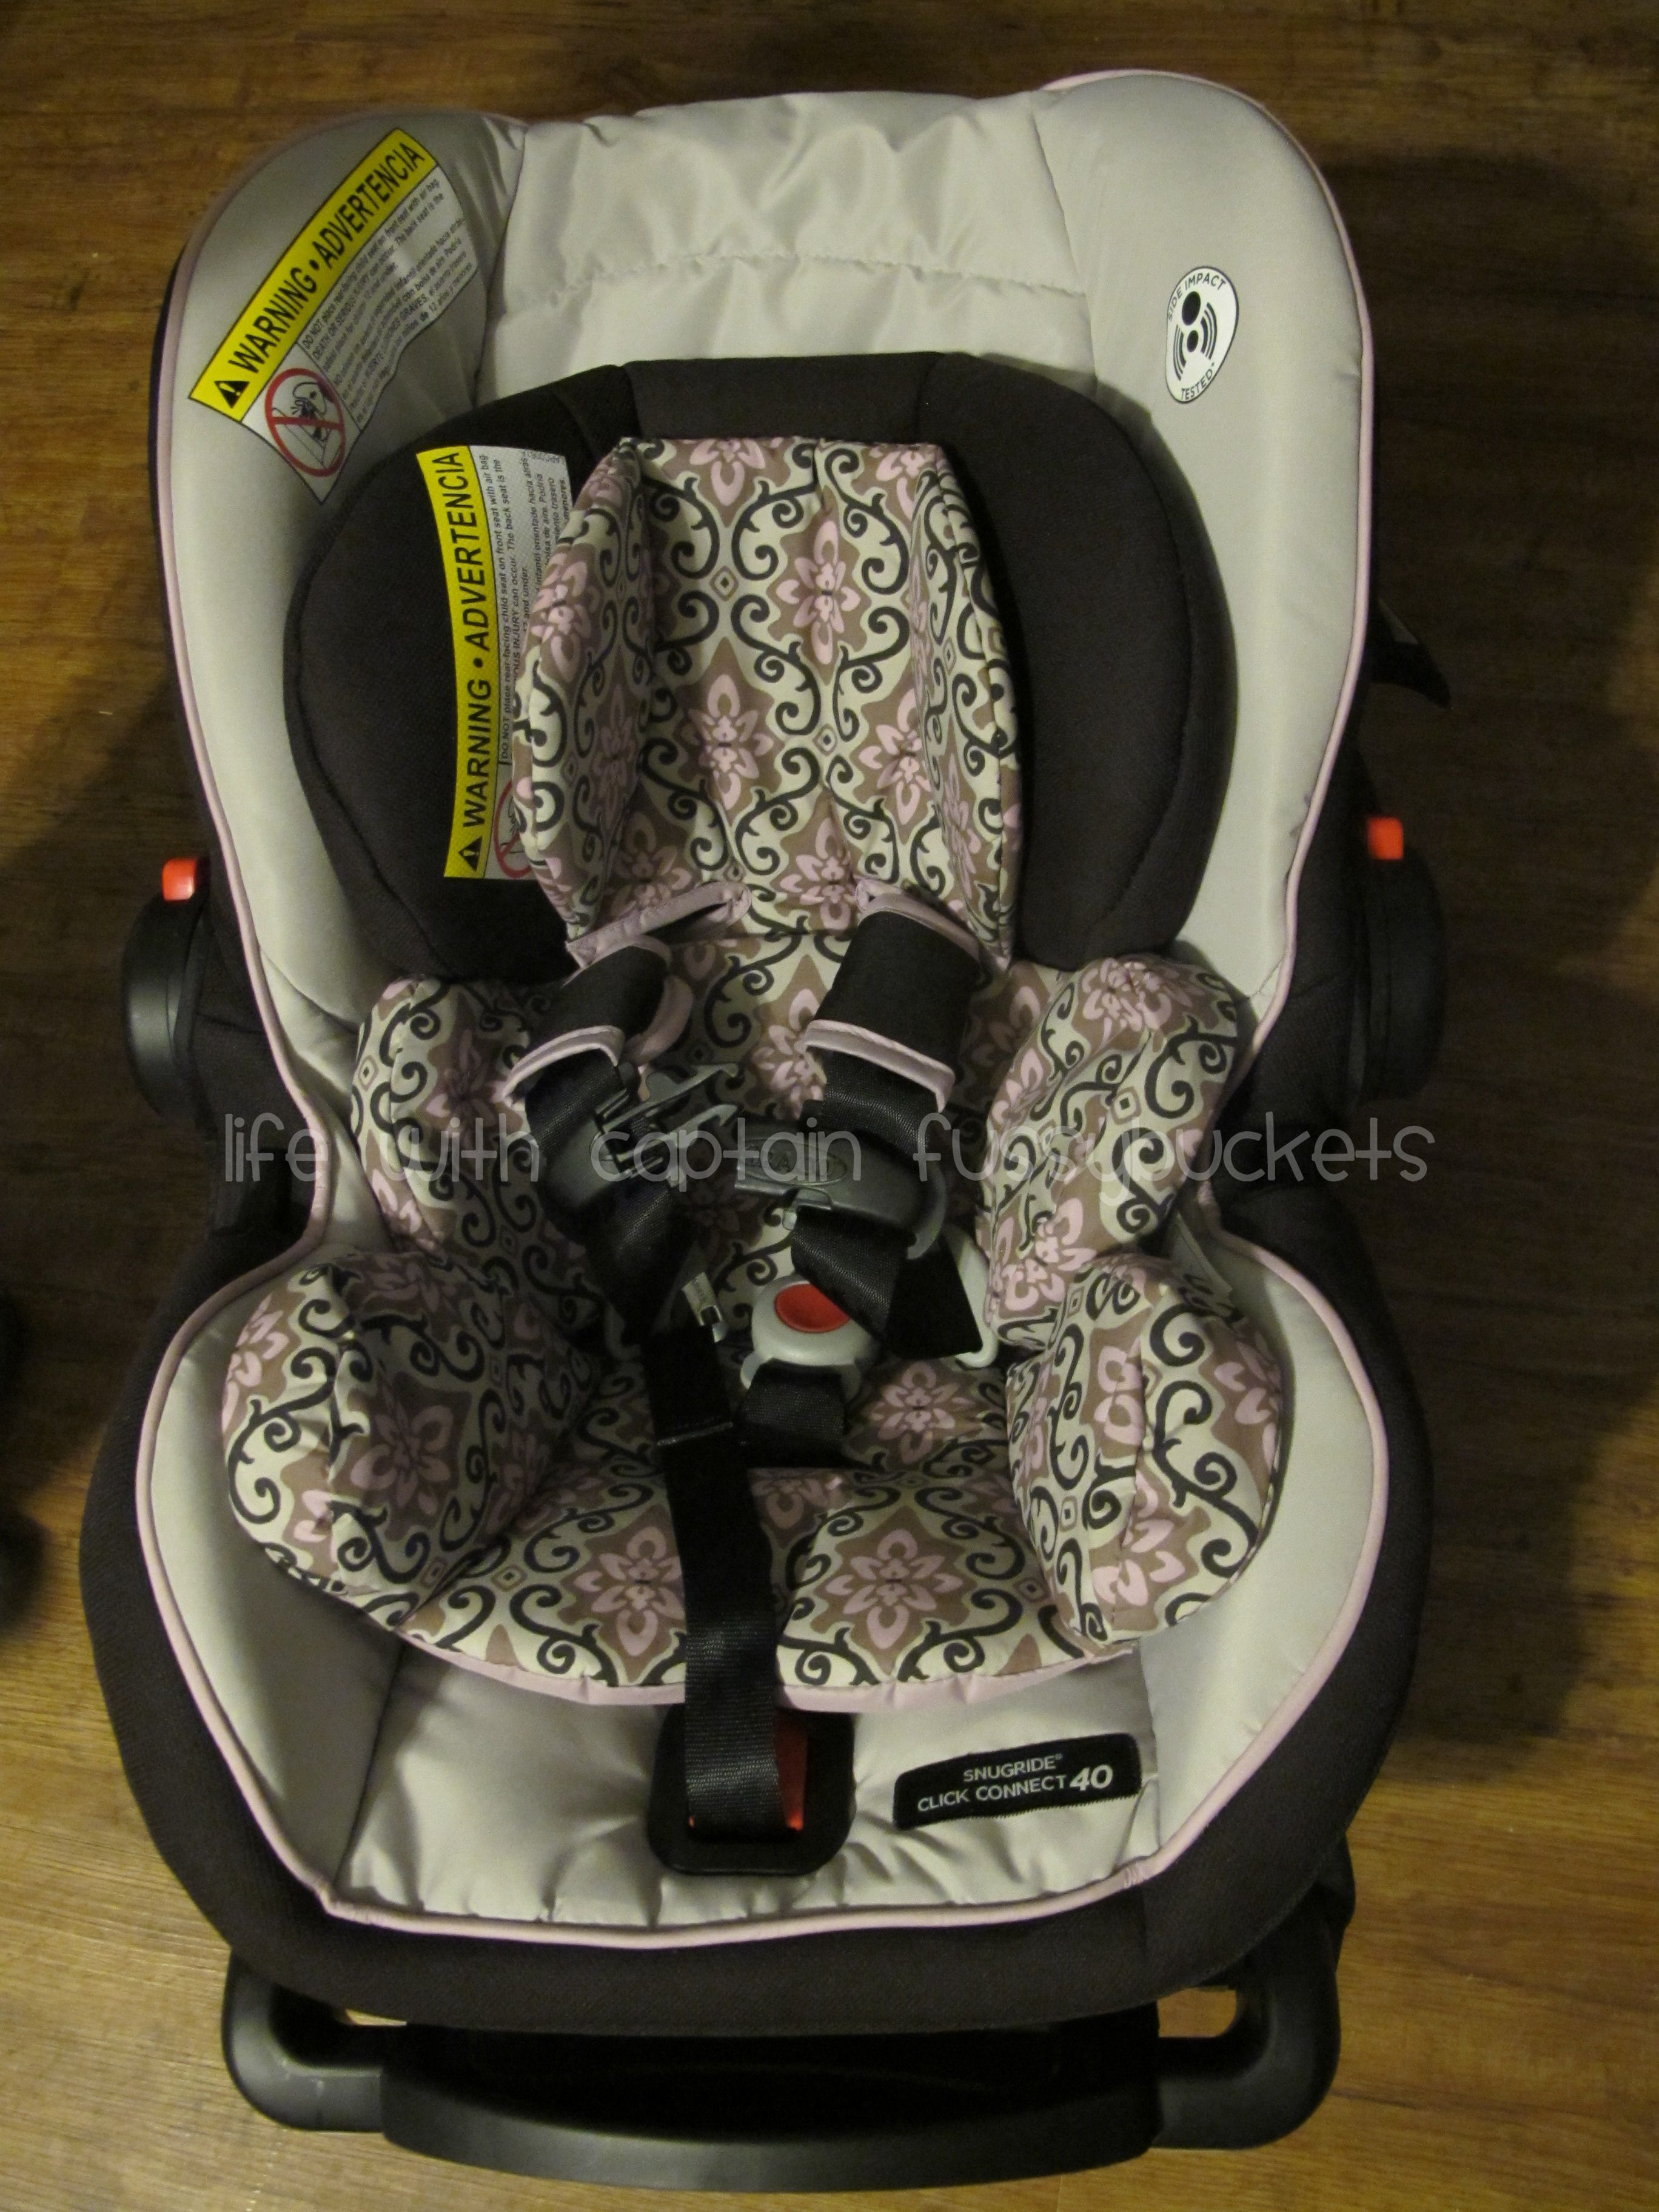 Graco SnugRide Click Connect 40 Carseat To Review GracoSafety